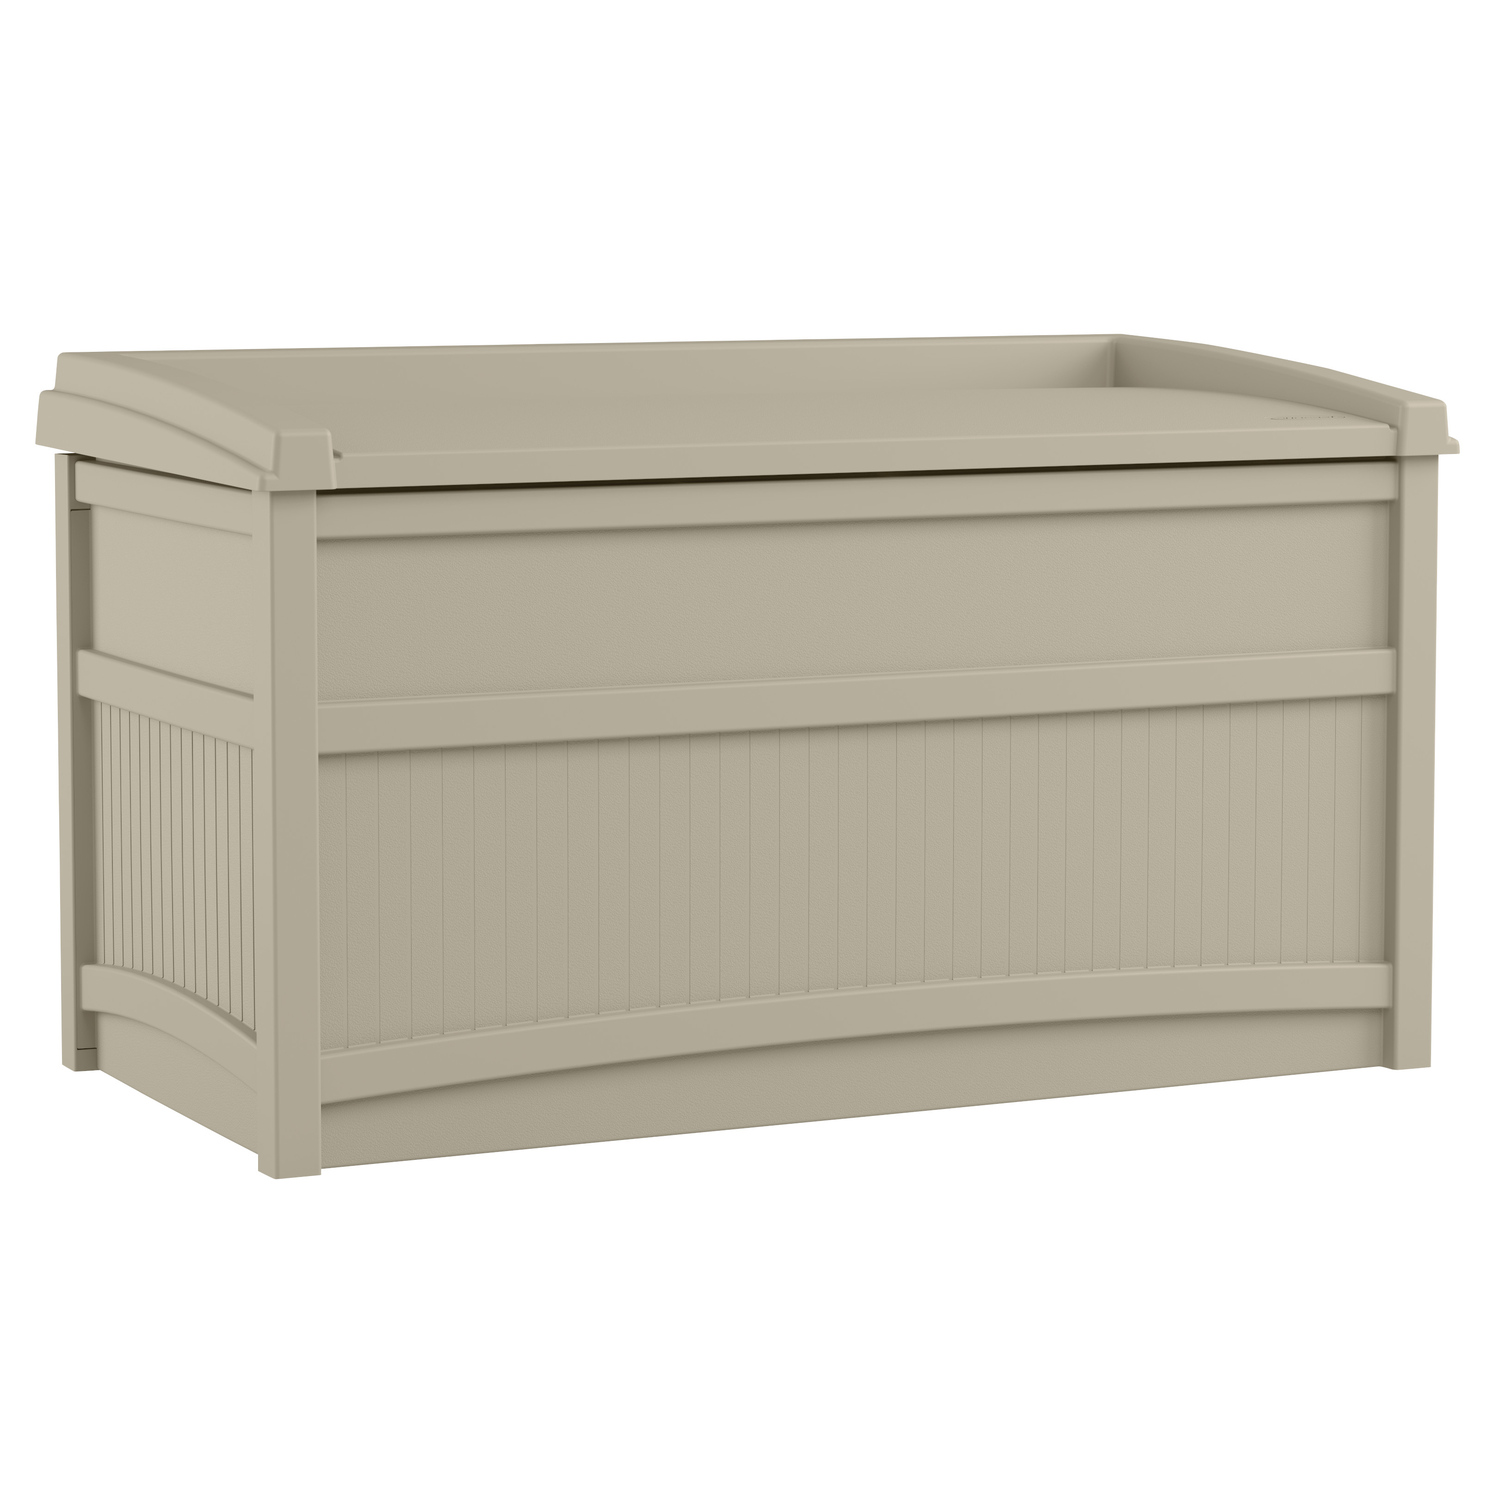 Suncast  Resin  23-1/4 in. H x 41 in. W x 21 in. D Deck Box with Seat  Light Taupe